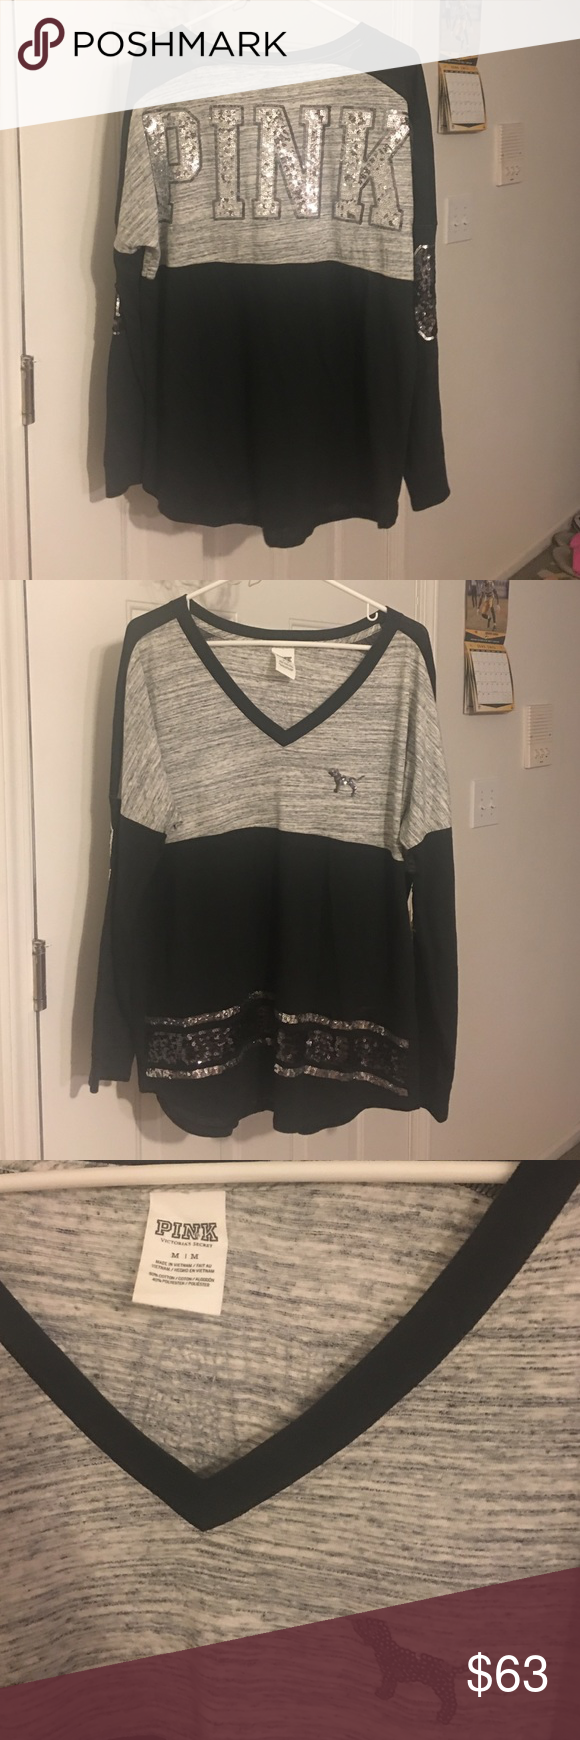 Victoria's Secret pink bling vneck crew Size medium. Like new condition! No flaws! Very cute and comfy. Willing to trade for other vs pink clothing. bundle to save(: PINK Victoria's Secret Sweaters Crew & Scoop Necks